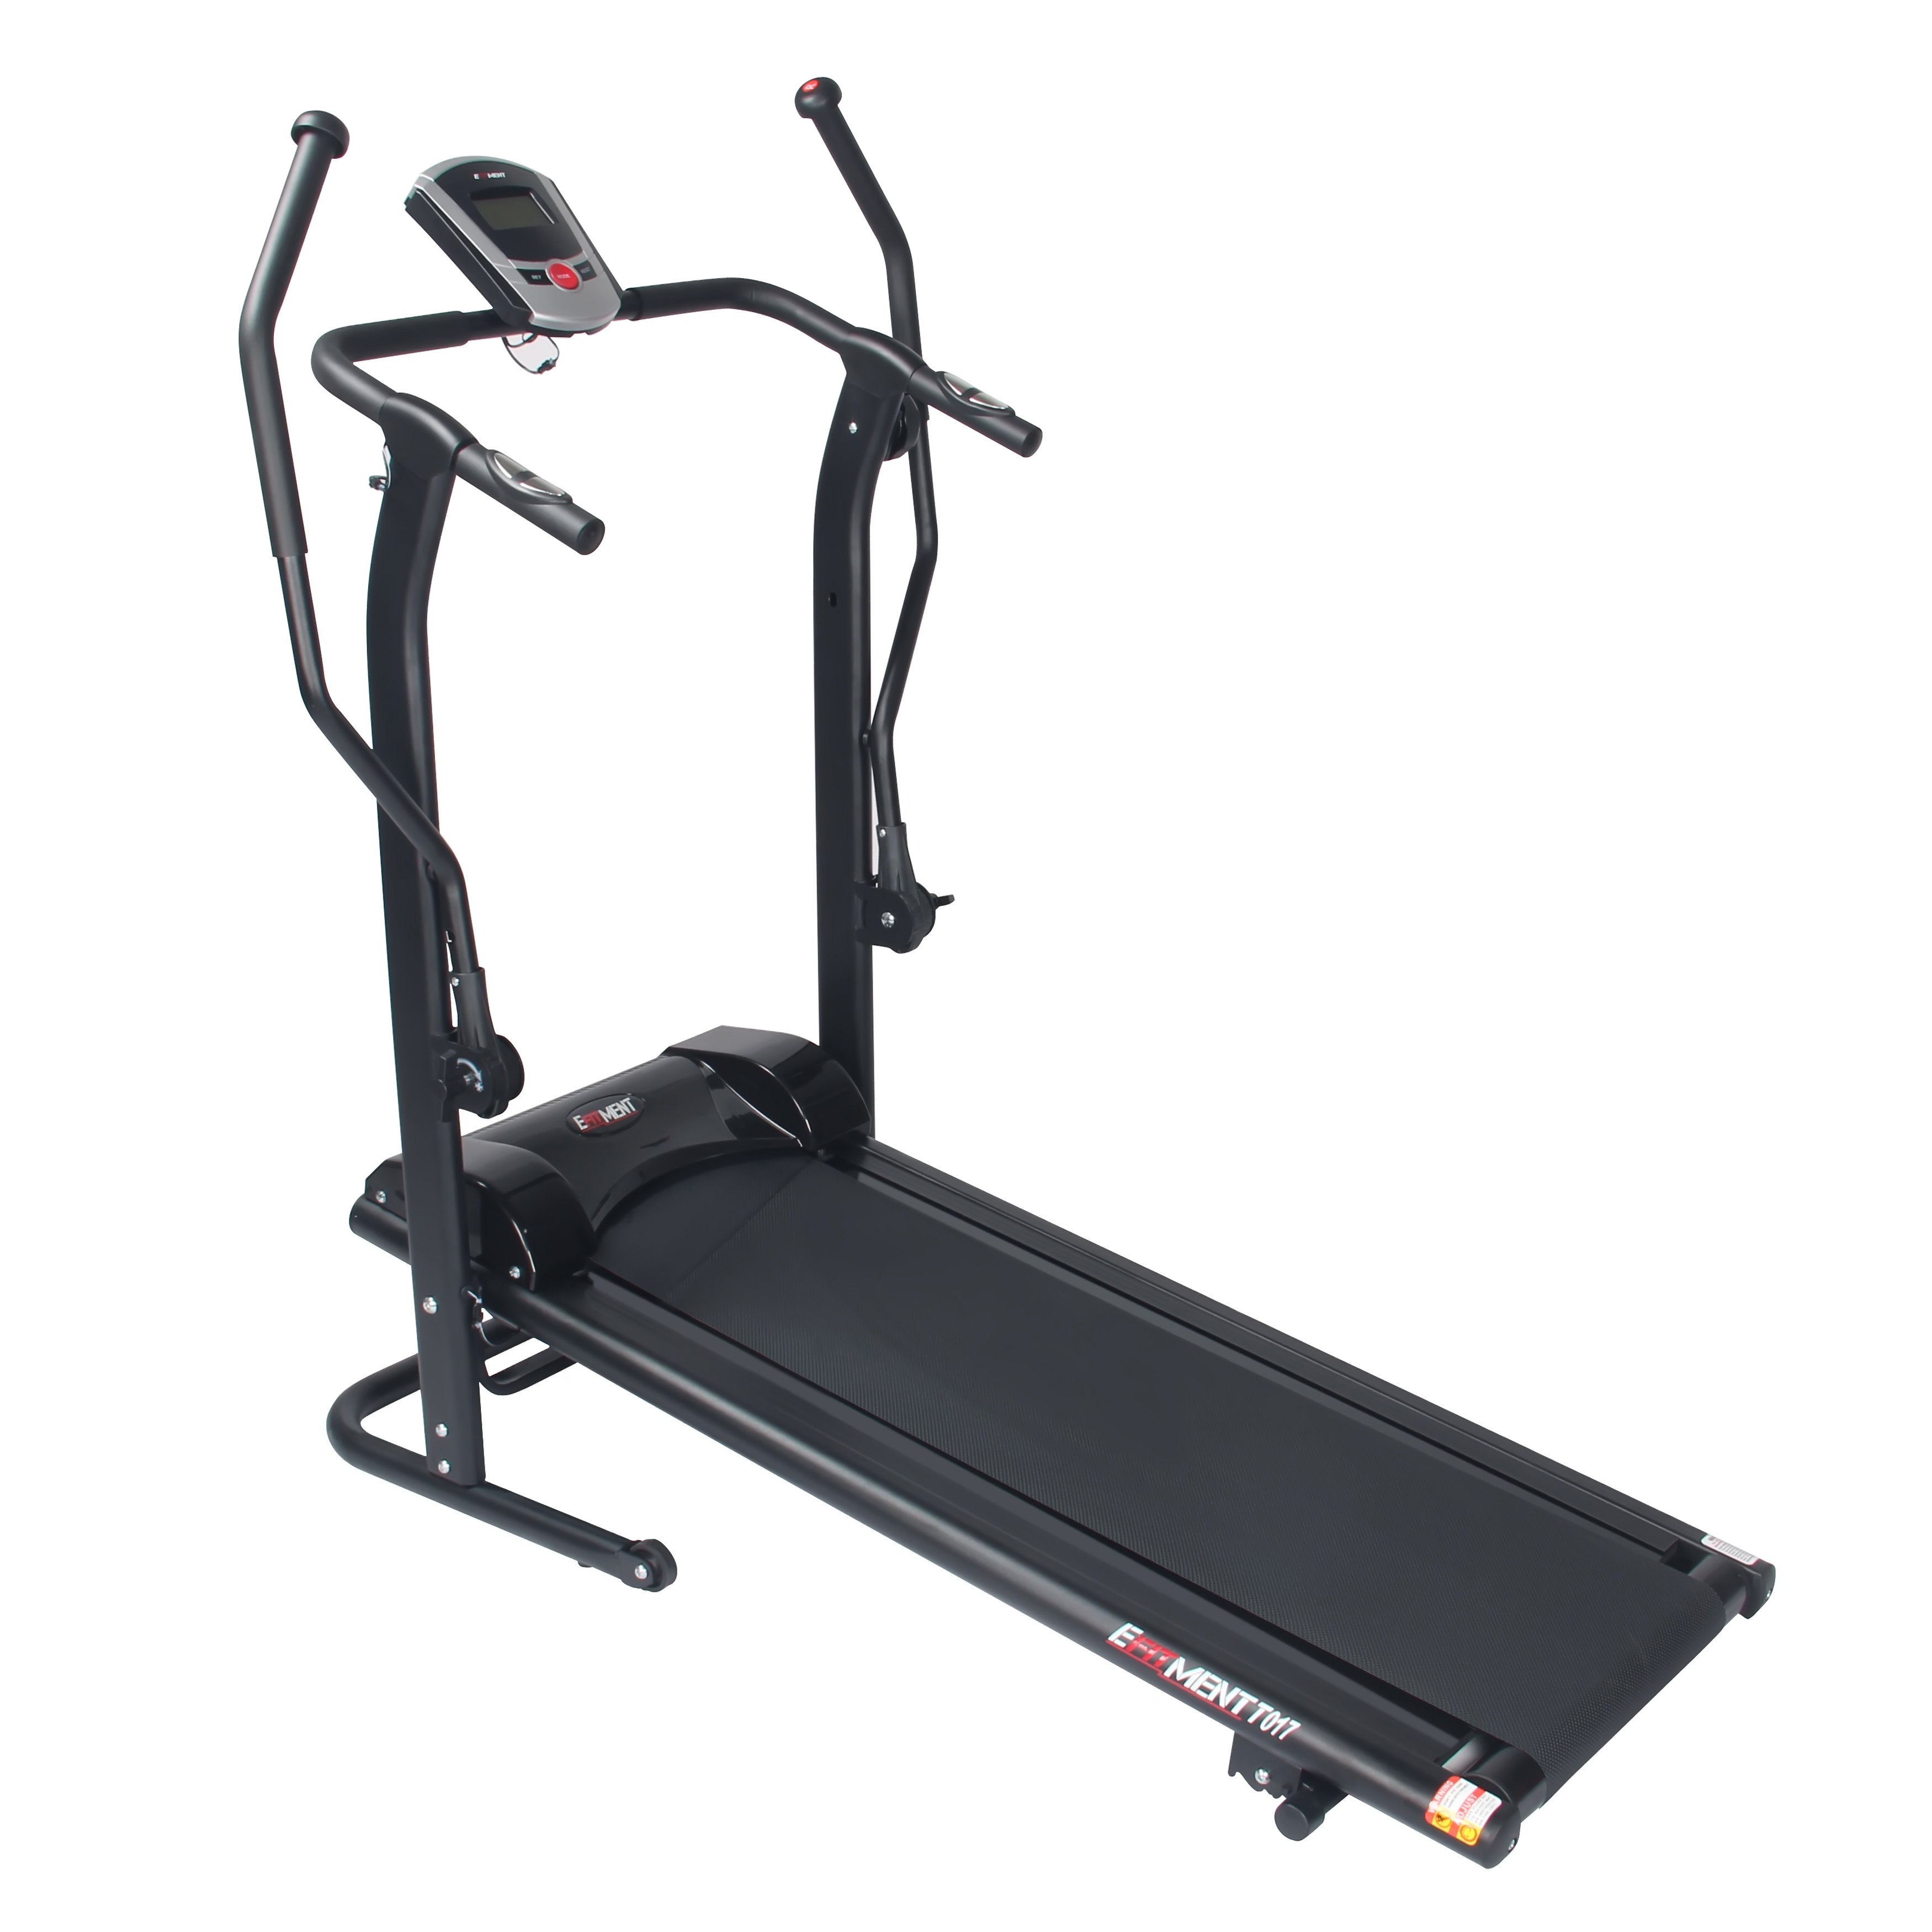 Adjustable Incline Manual Treadmill with Arm Exercisers and Pulse Monitor by EFITMENT - T017